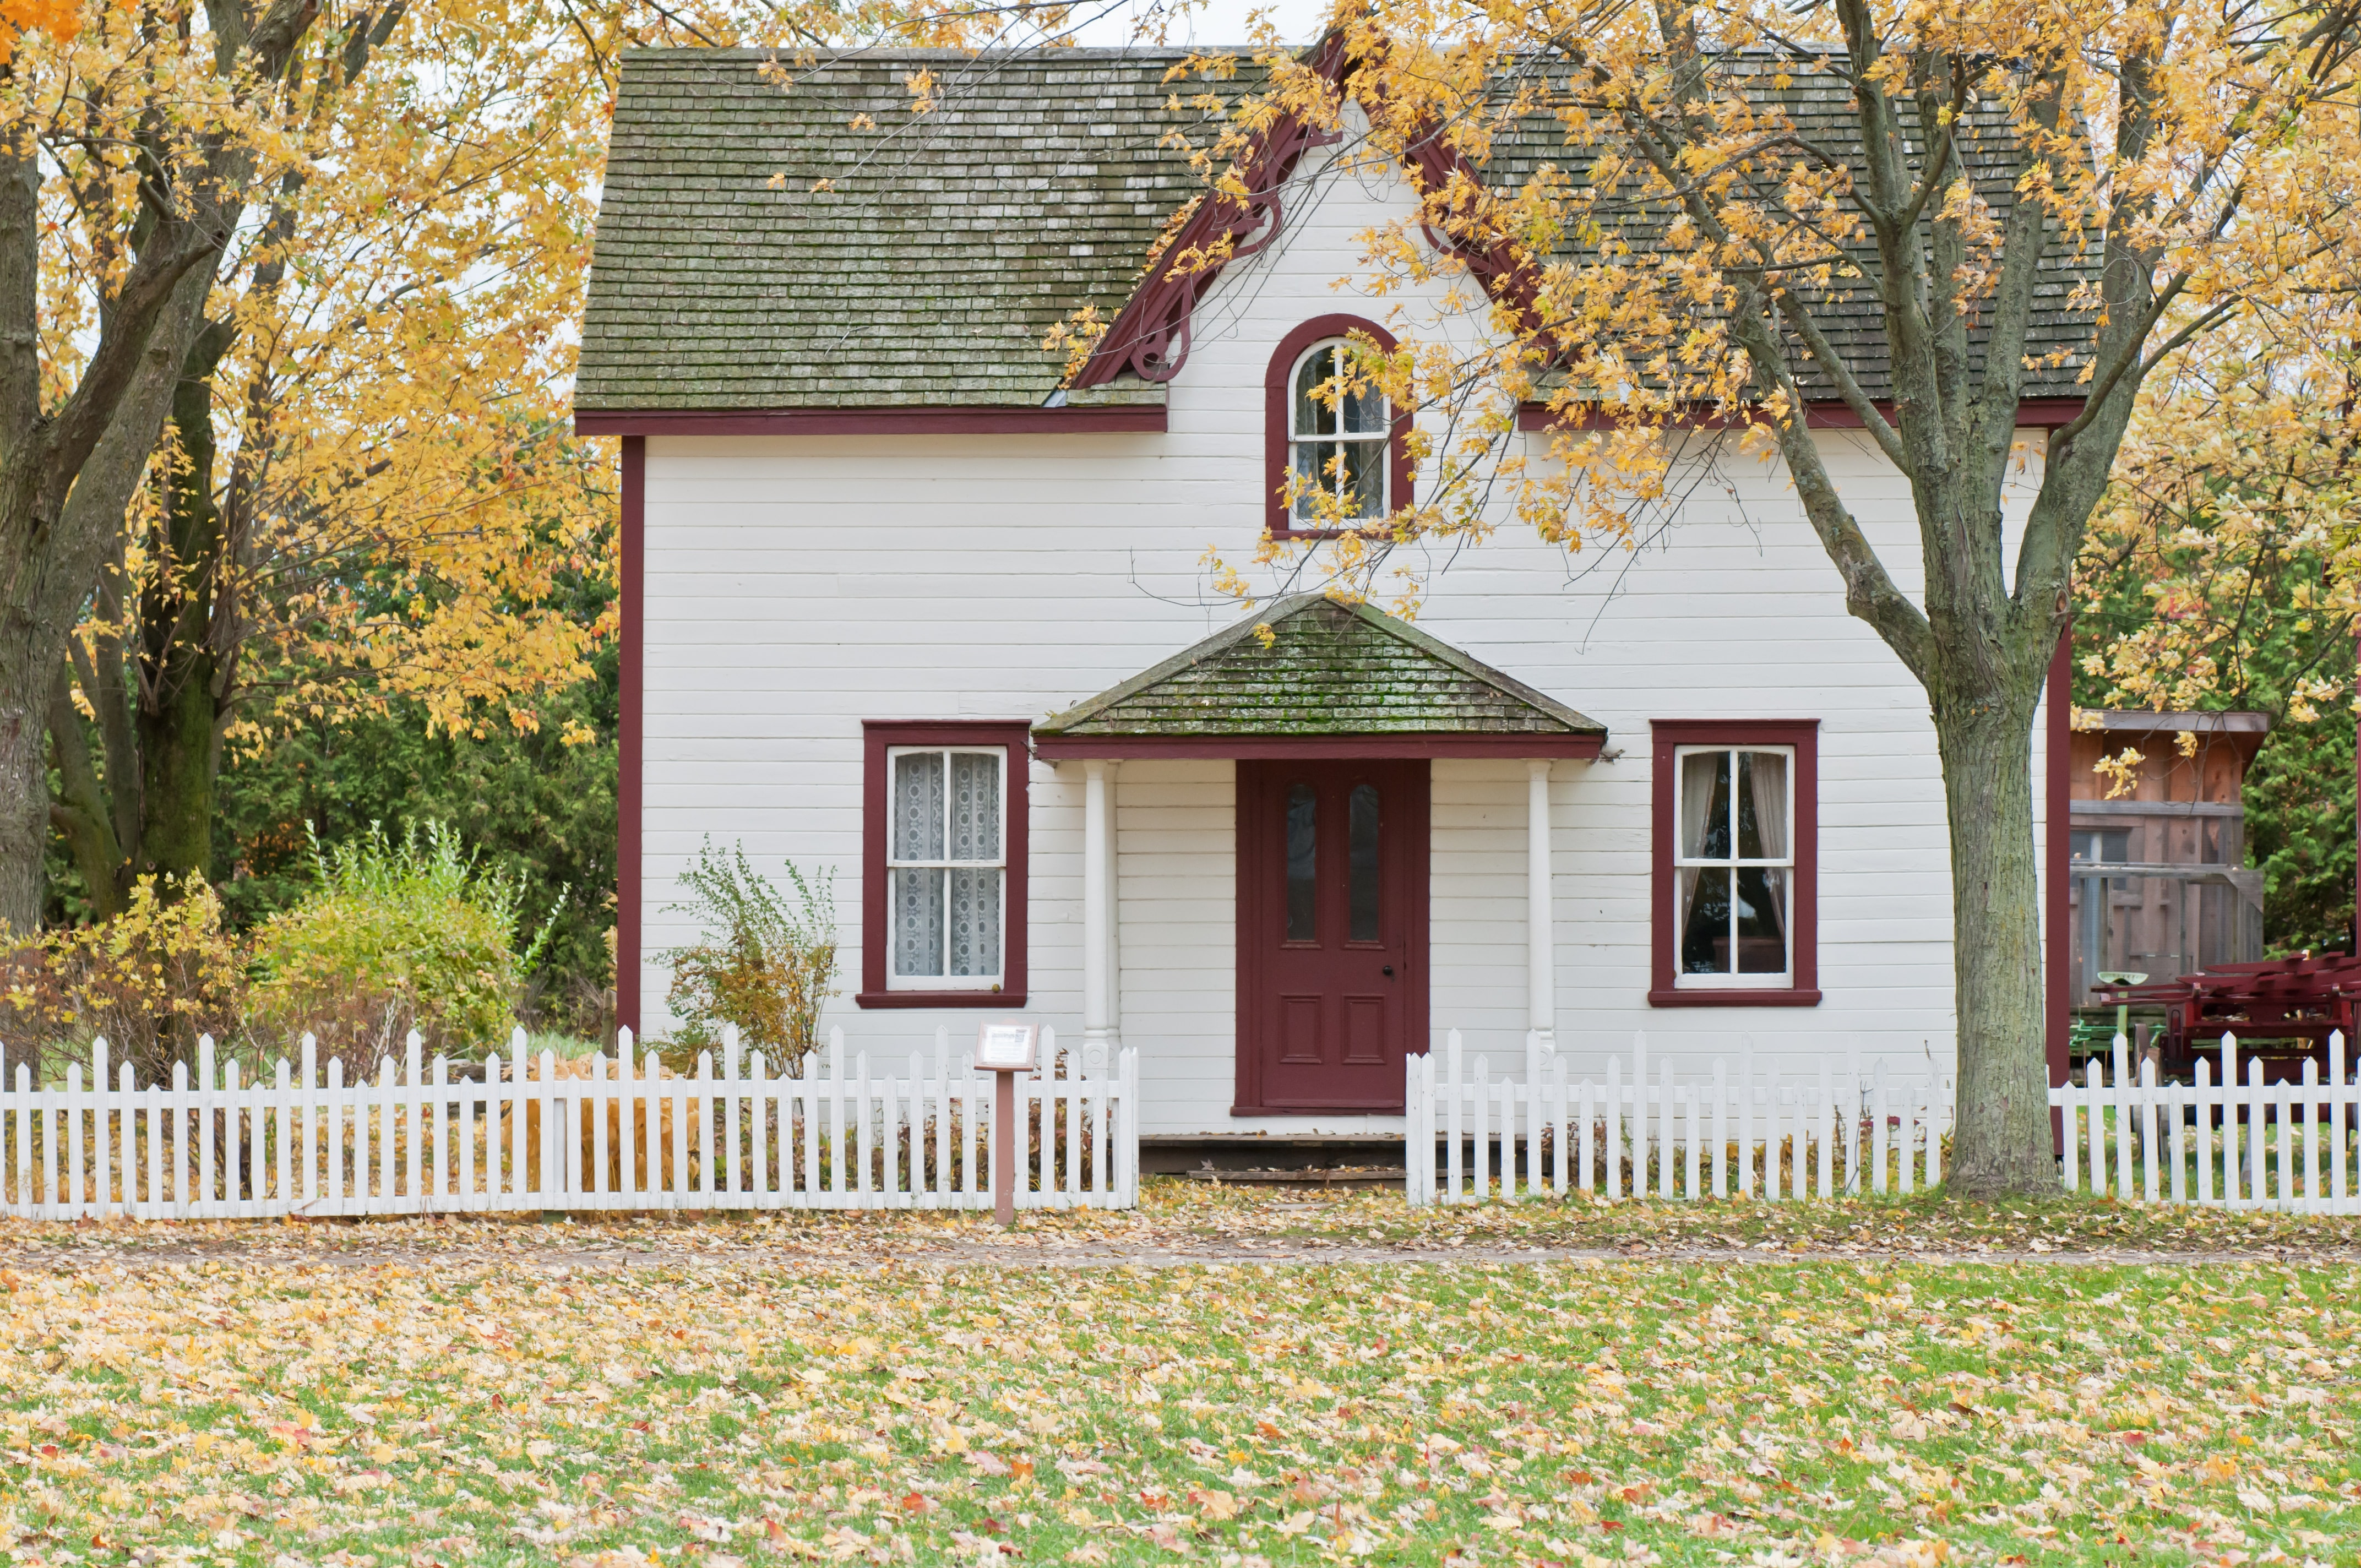 Picture of a white wooden house with a white picket fence